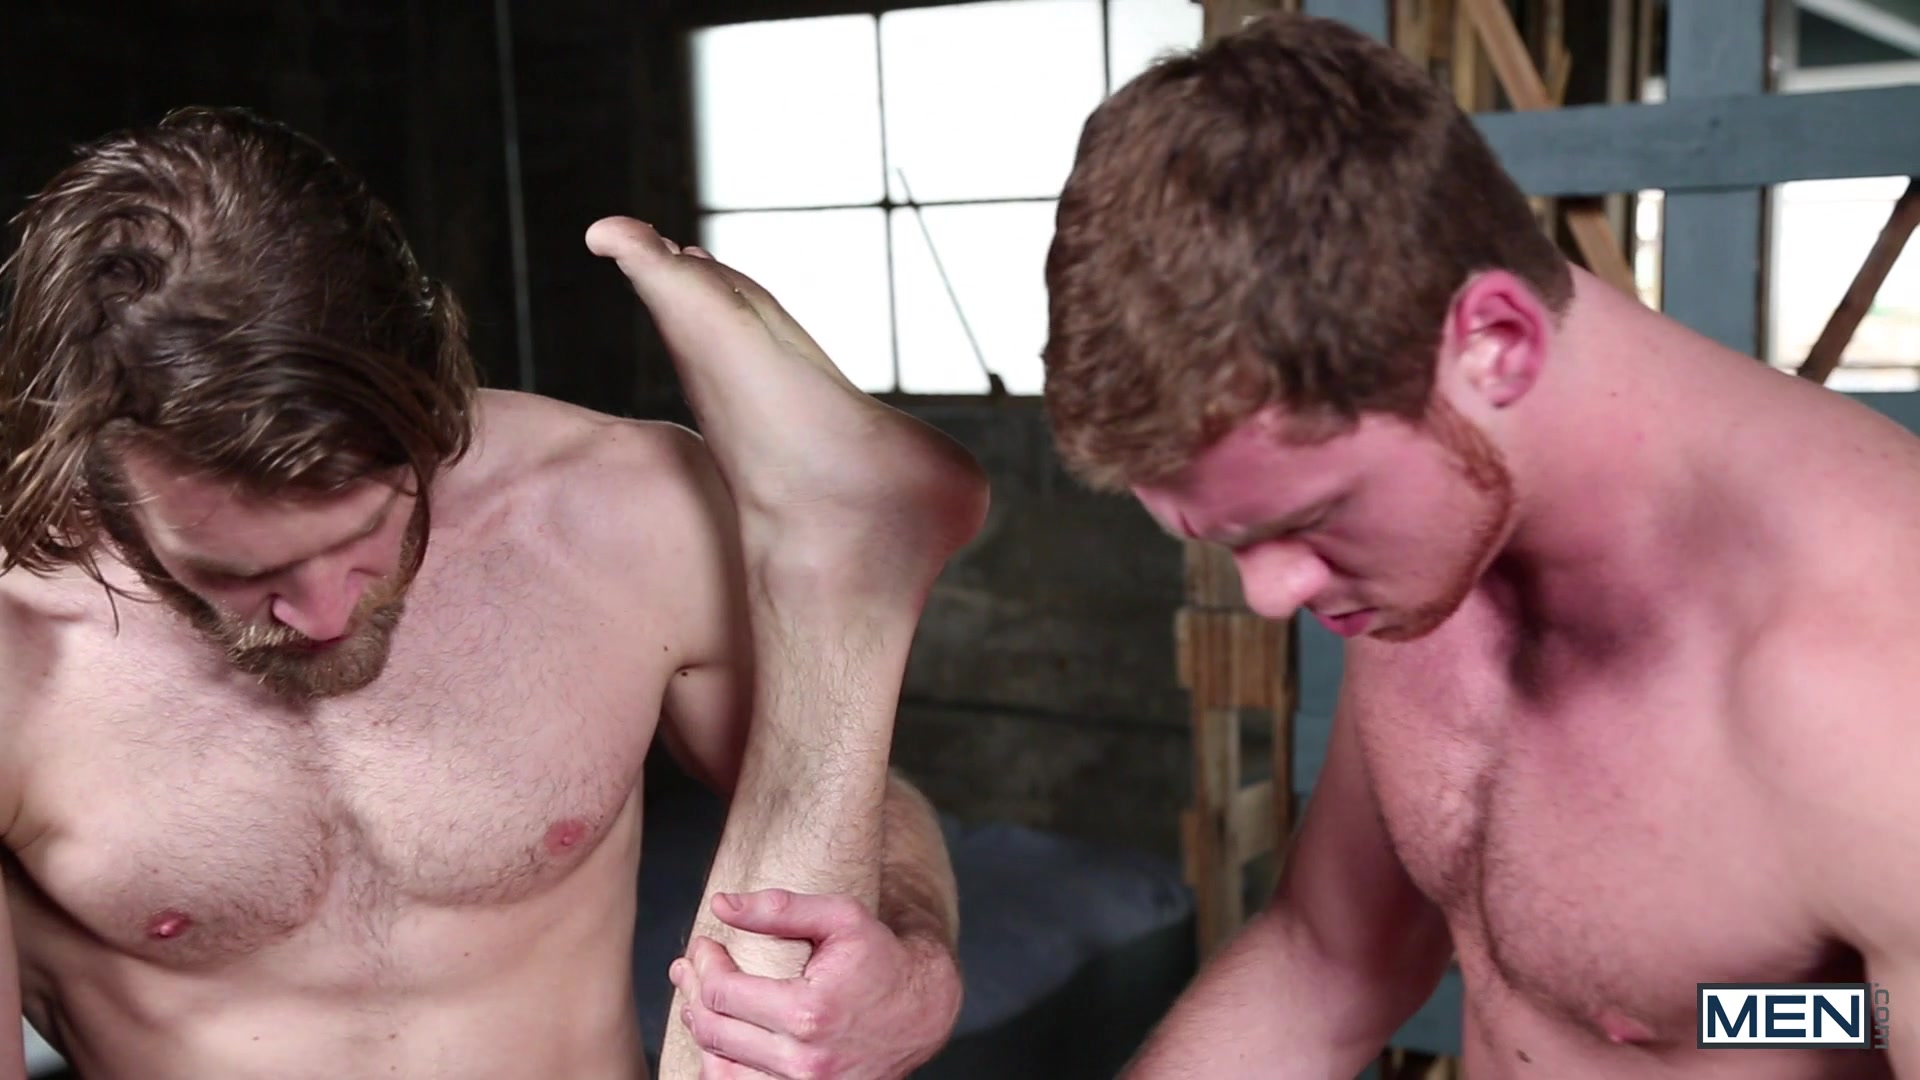 Watch Cum Right In – Dmh – Drill My Hole – Colby Keller – Connor Maguire And Phenix Saint (MEN.COM) Gay Porn Tube Videos Gifs And Free XXX HD Sex Movies Photos Online